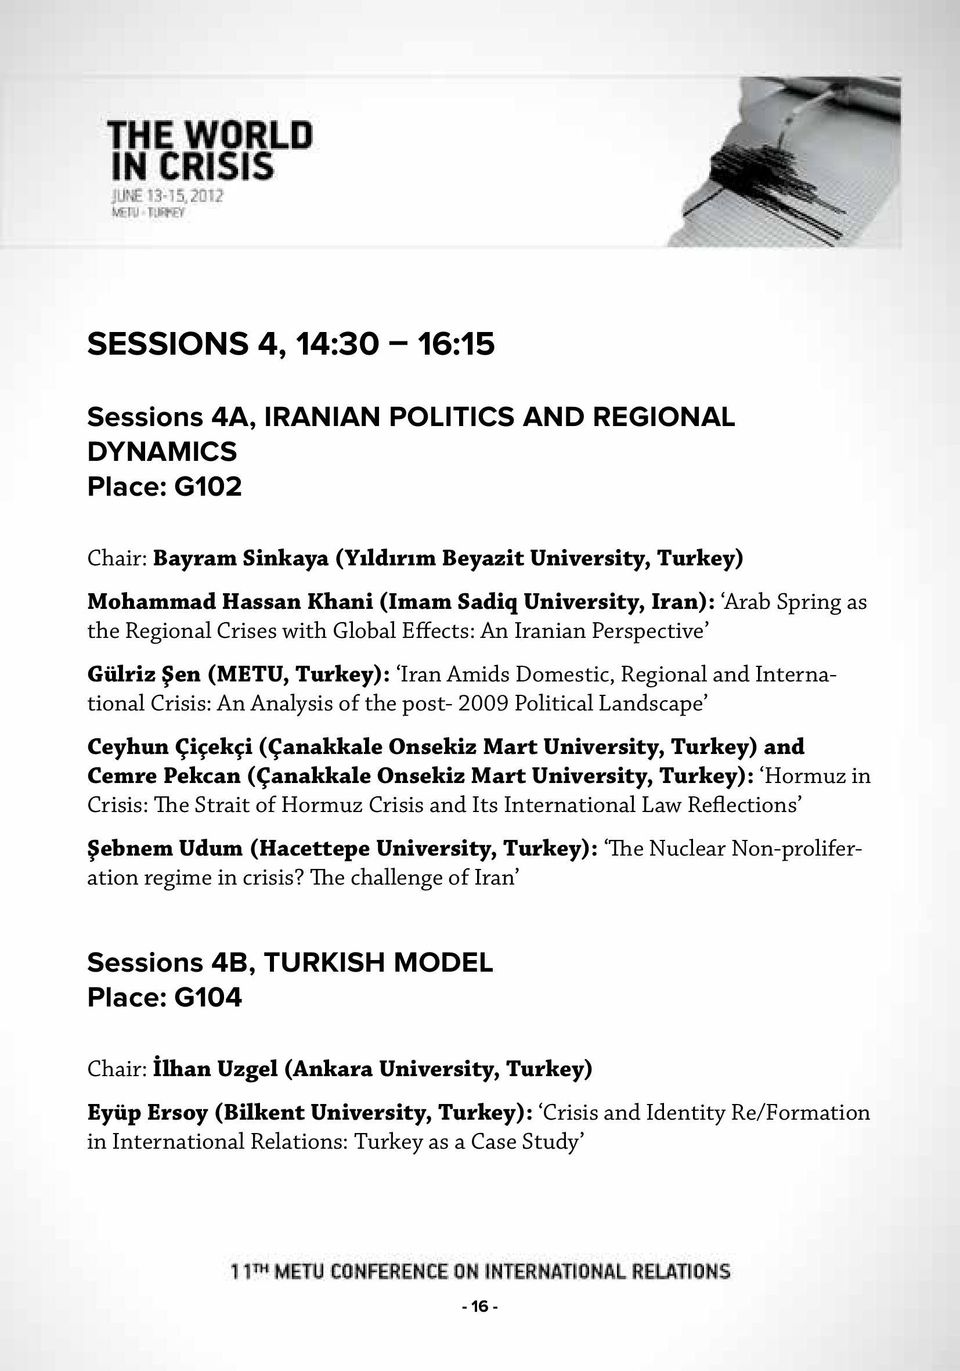 Political Landscape Ceyhun Çiçekçi (Çanakkale Onsekiz Mart University, Turkey) and Cemre Pekcan (Çanakkale Onsekiz Mart University, Turkey): Hormuz in Crisis: The Strait of Hormuz Crisis and Its